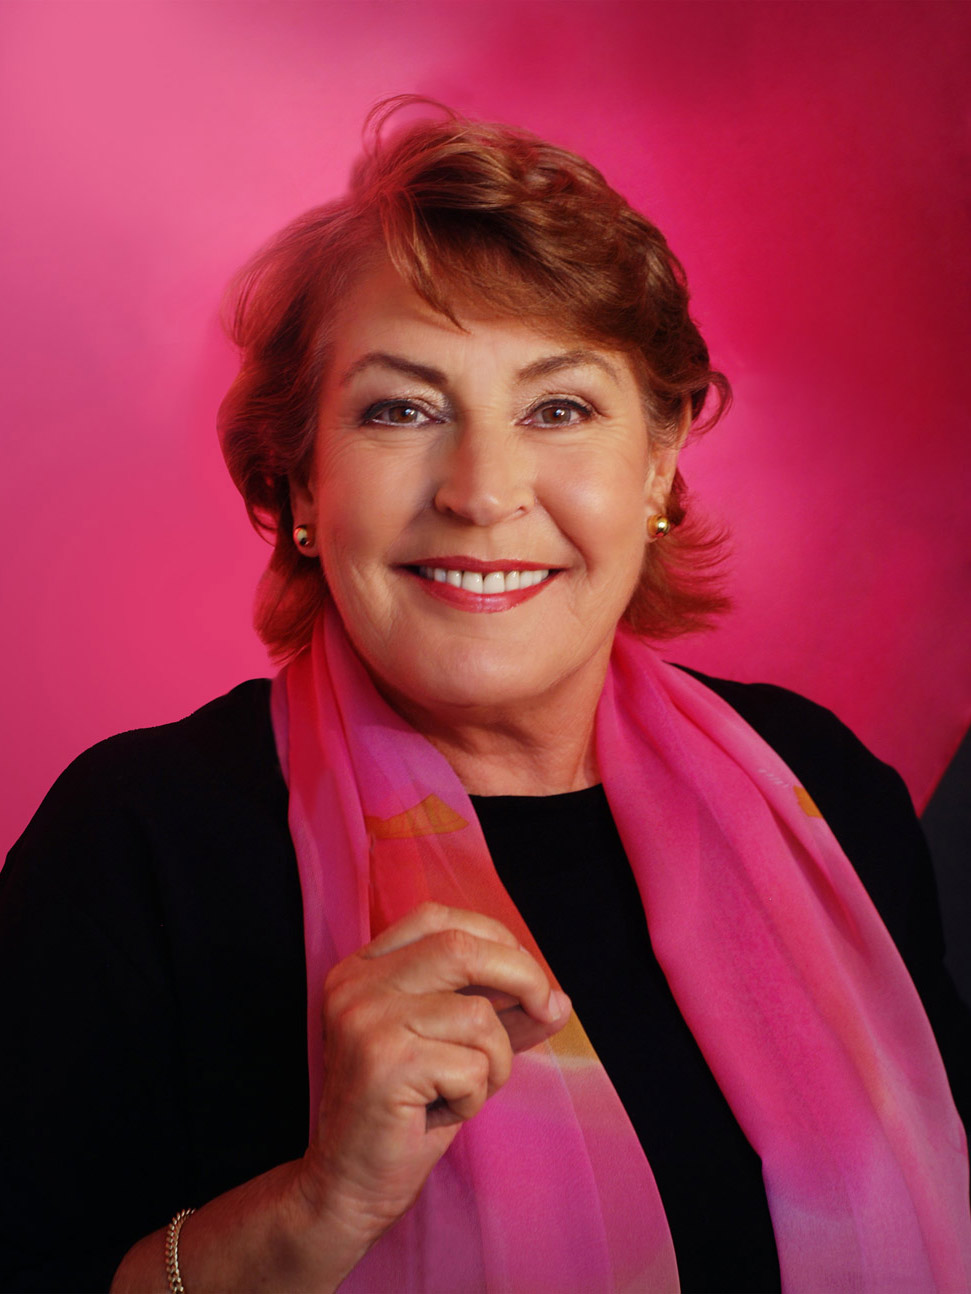 For Helen Reddy No More Quot Stupid Pop Songs Quot As She Takes